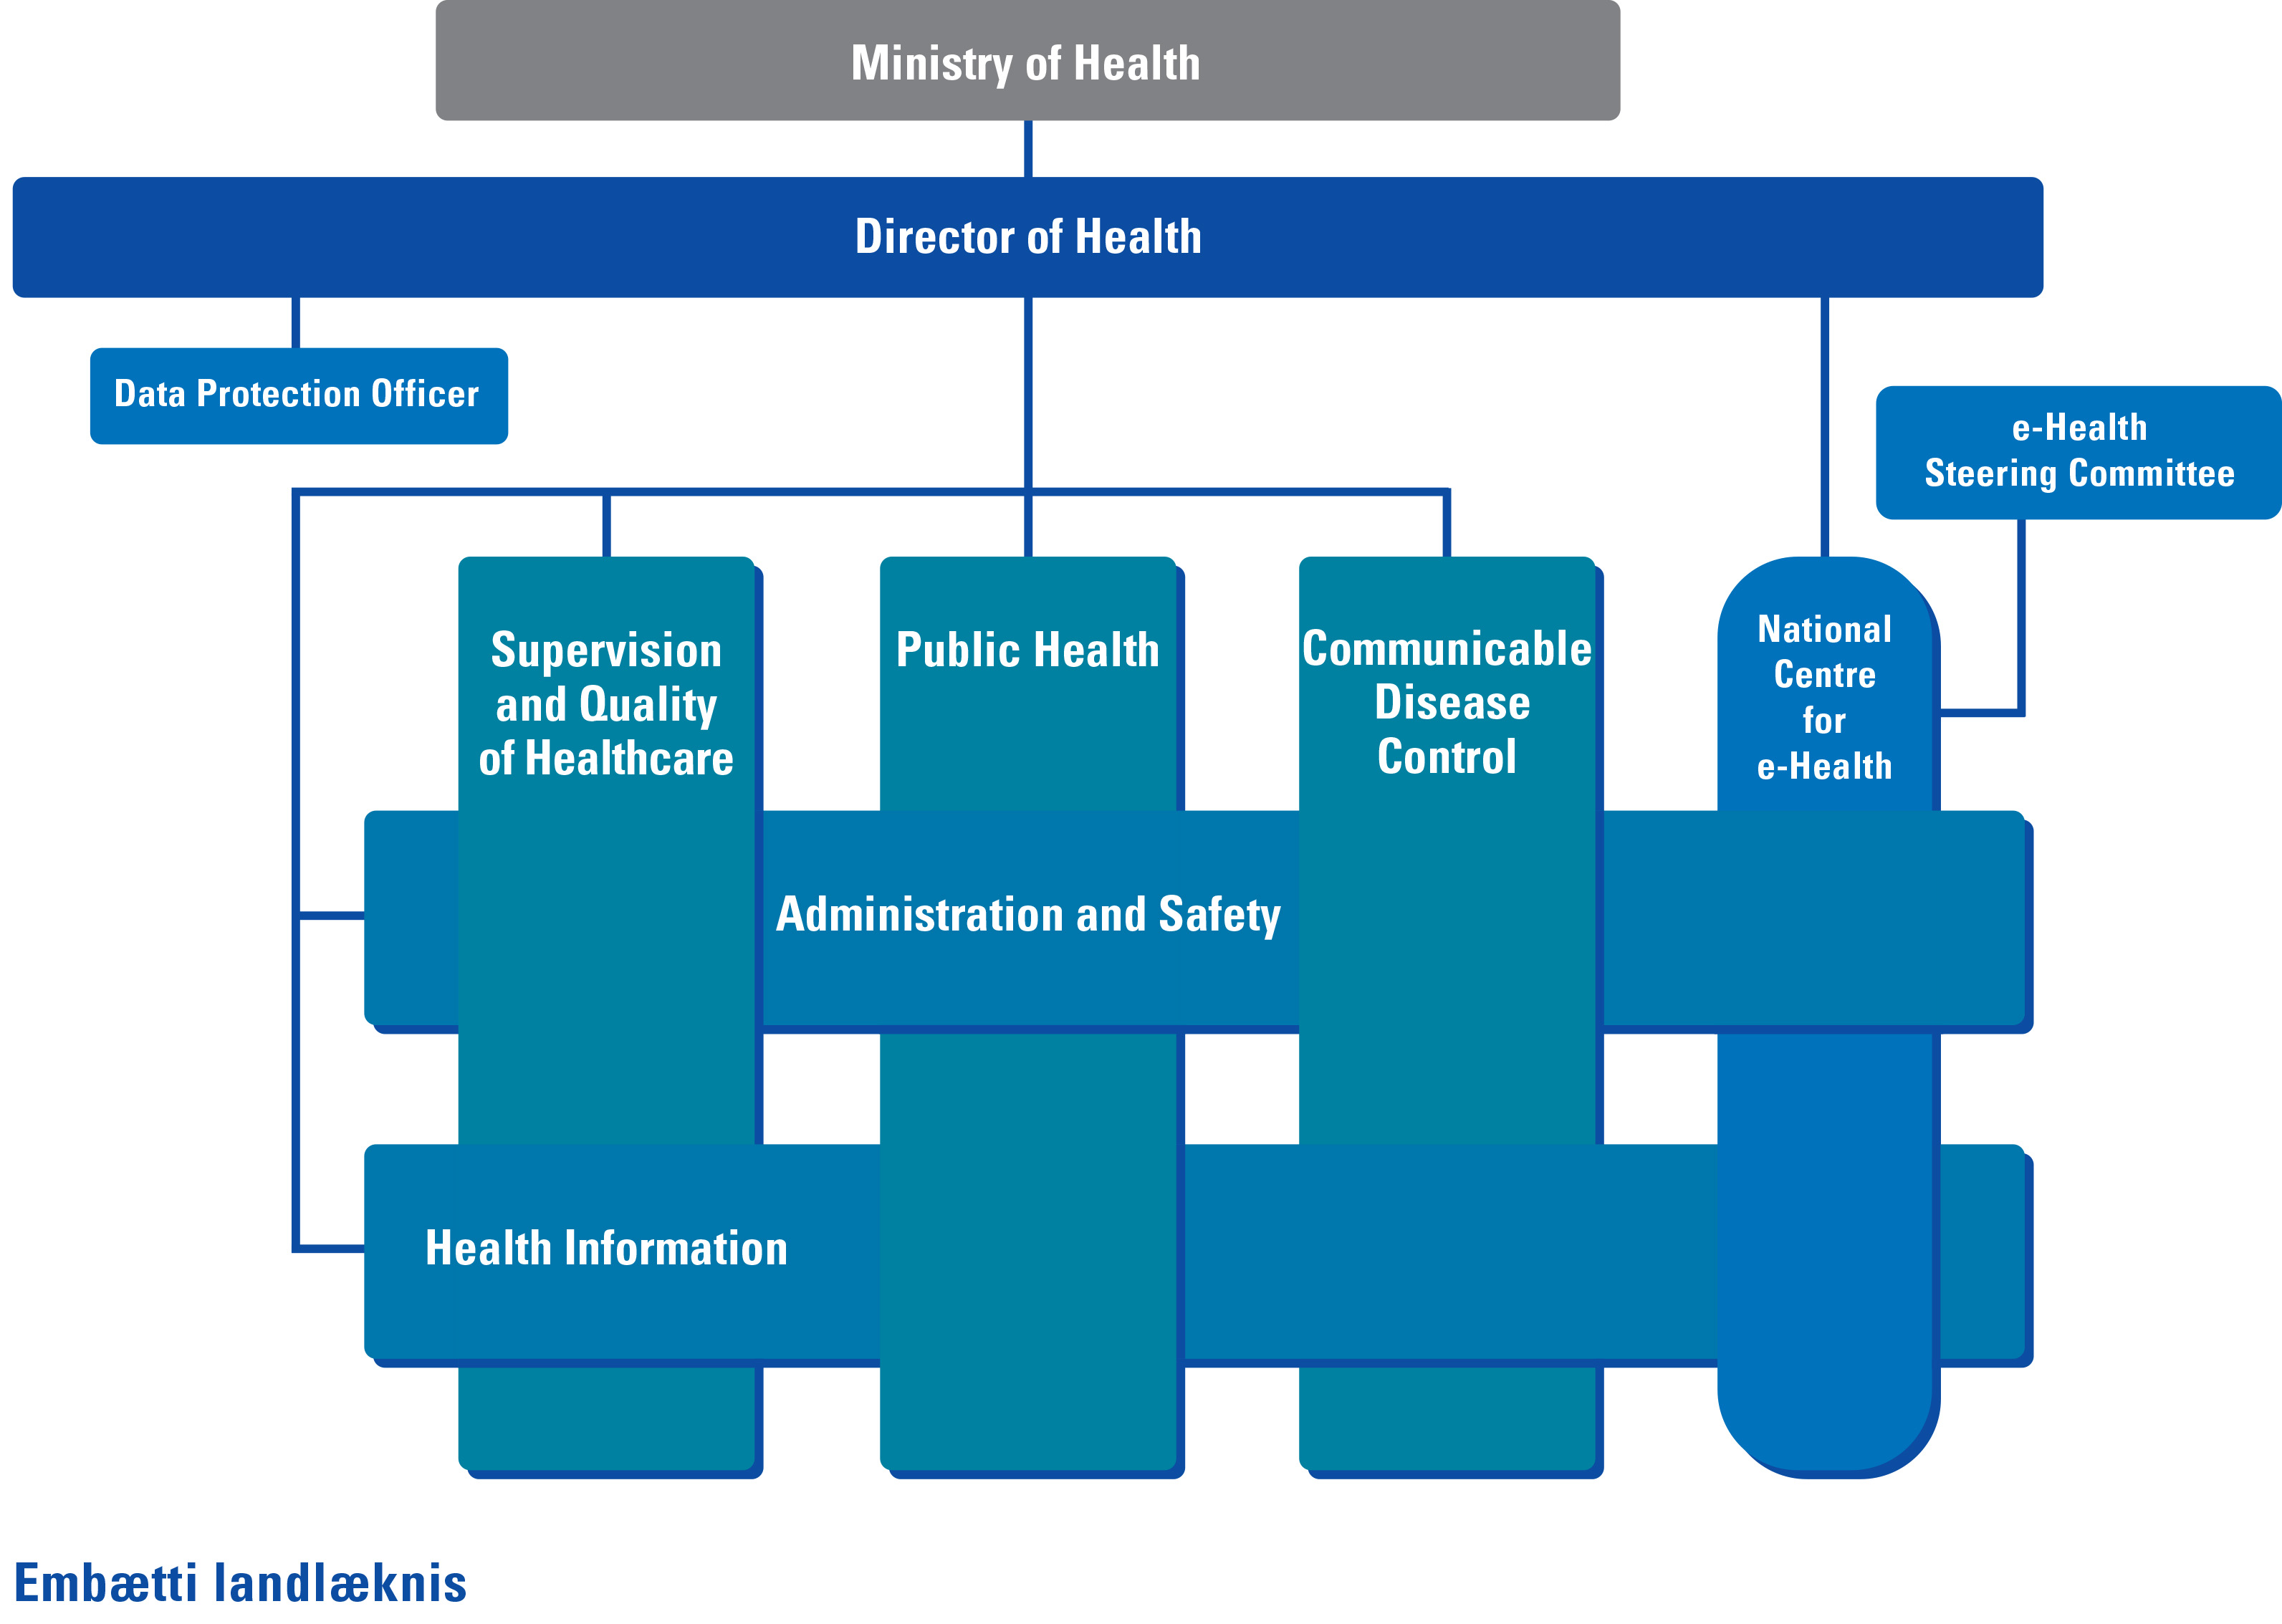 Directorate of Health. Organisational chart. Operative as of 1 March 2018